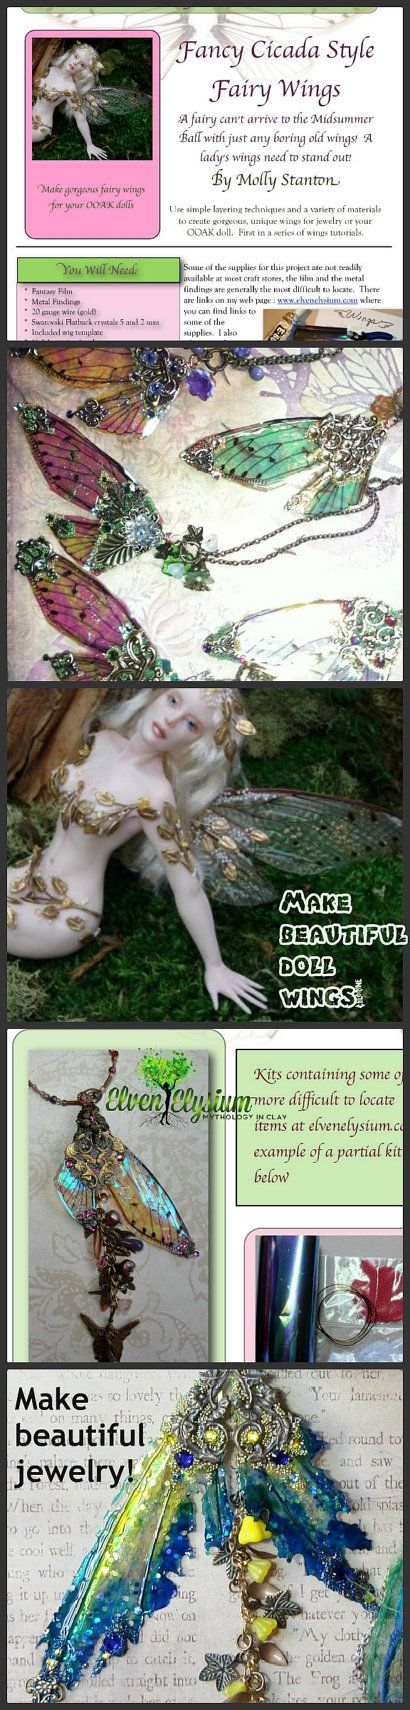 Your OOAK art dolls and fairy dolls will stand out from the crowd with this filigree fairy wings tutorial!  Use the tutorial to make beautiful fairy wing necklaces!  Step by step instructions make this project fun and take all the intimidation out of creating fancy wings!